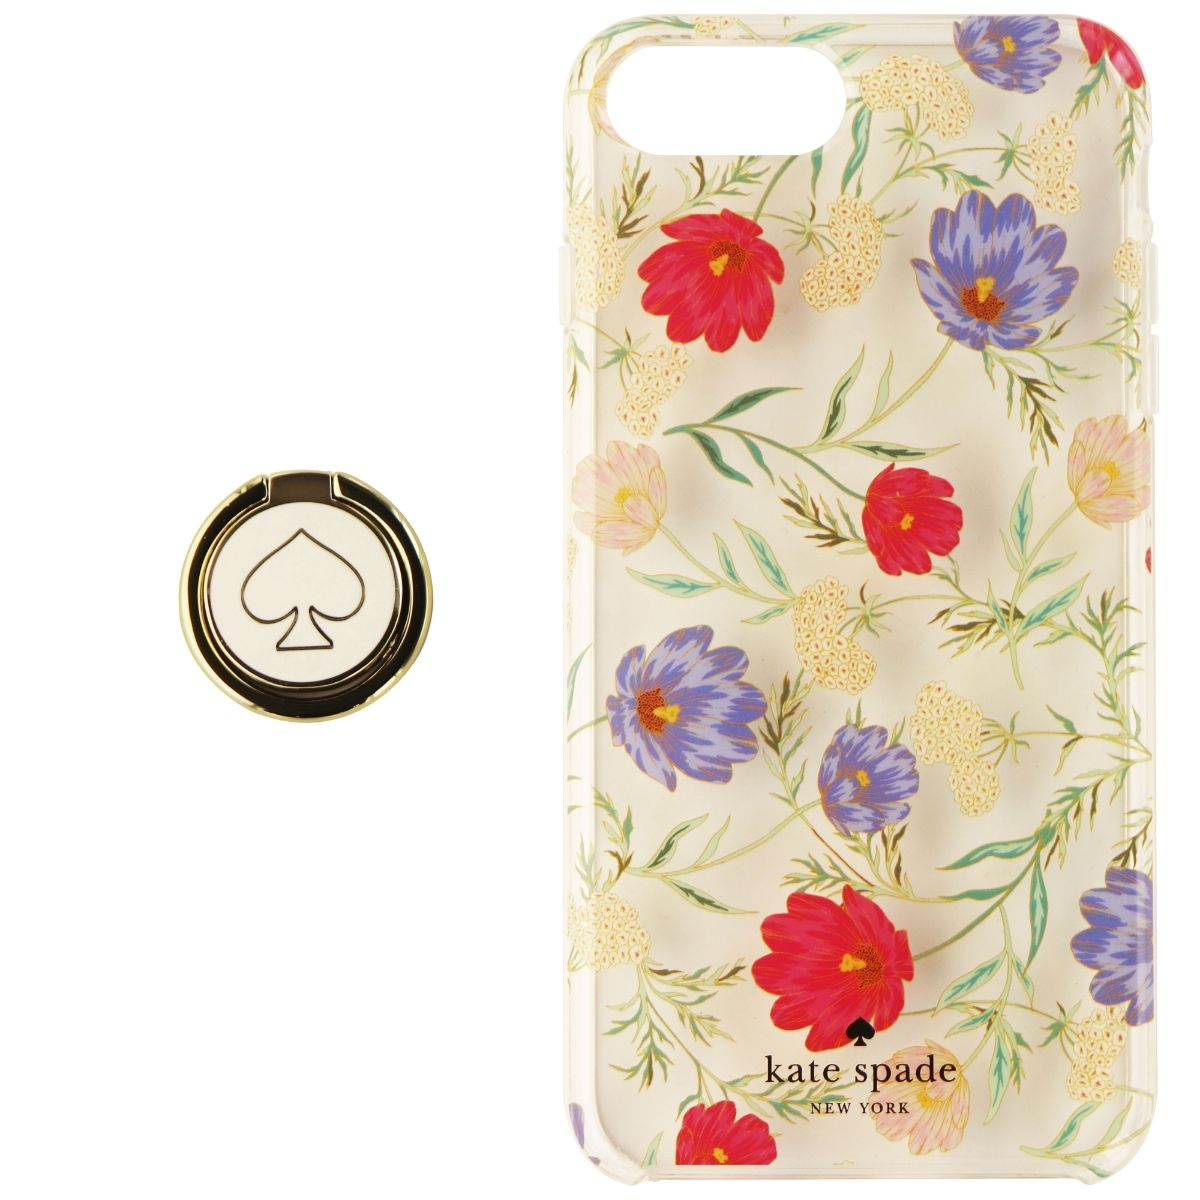 Kate Spade Case w/ Ring Stand for iPhone 8 Plus/7 Plus/6s Plus - Clear / Flowers